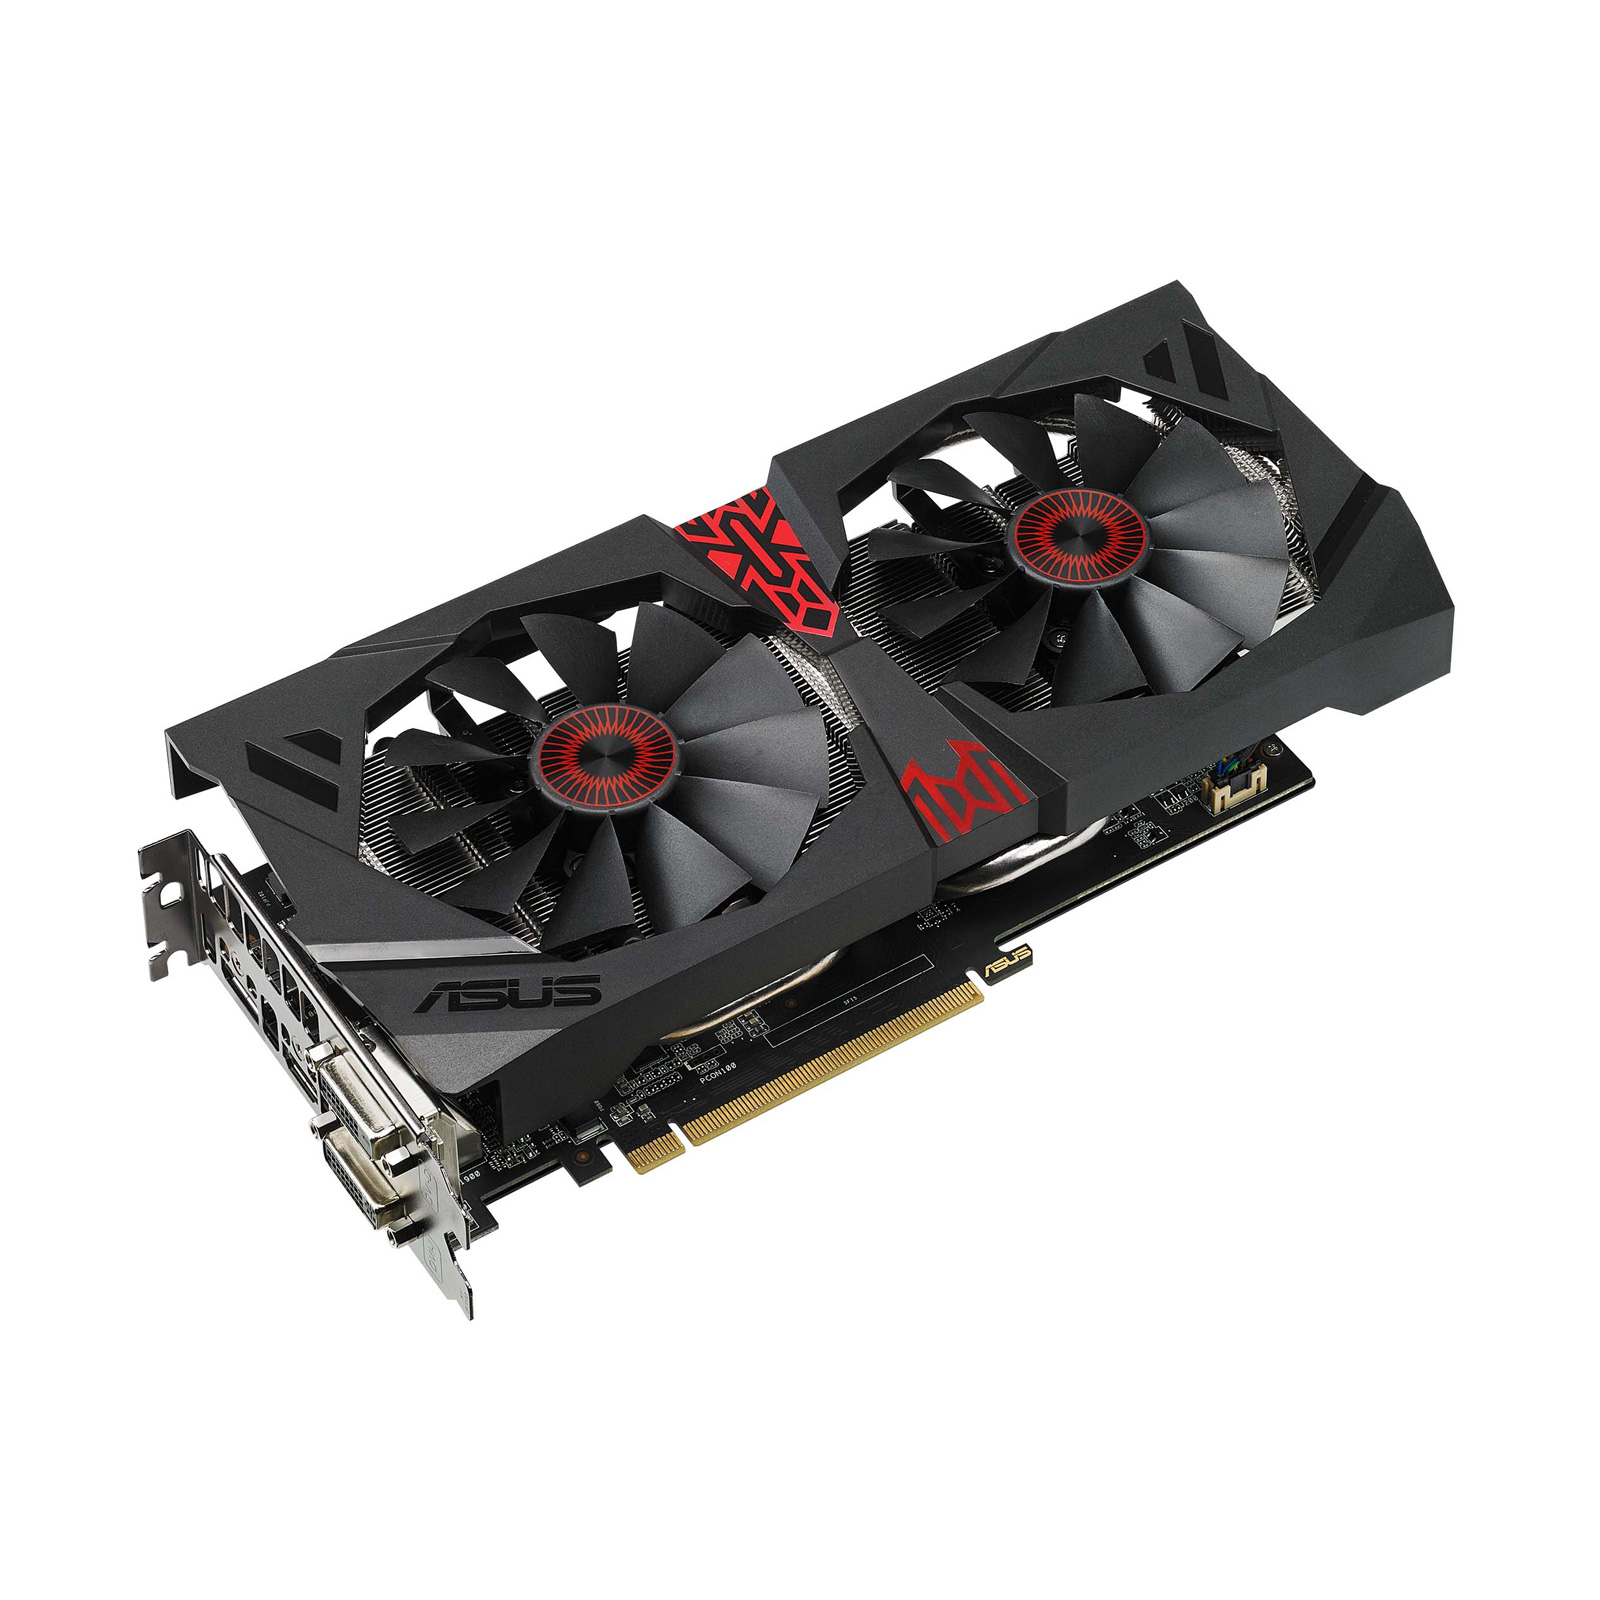 asus radeon r9 380x strix r9380x oc4g gaming 90yv0901 m0na00 achat vente carte graphique. Black Bedroom Furniture Sets. Home Design Ideas